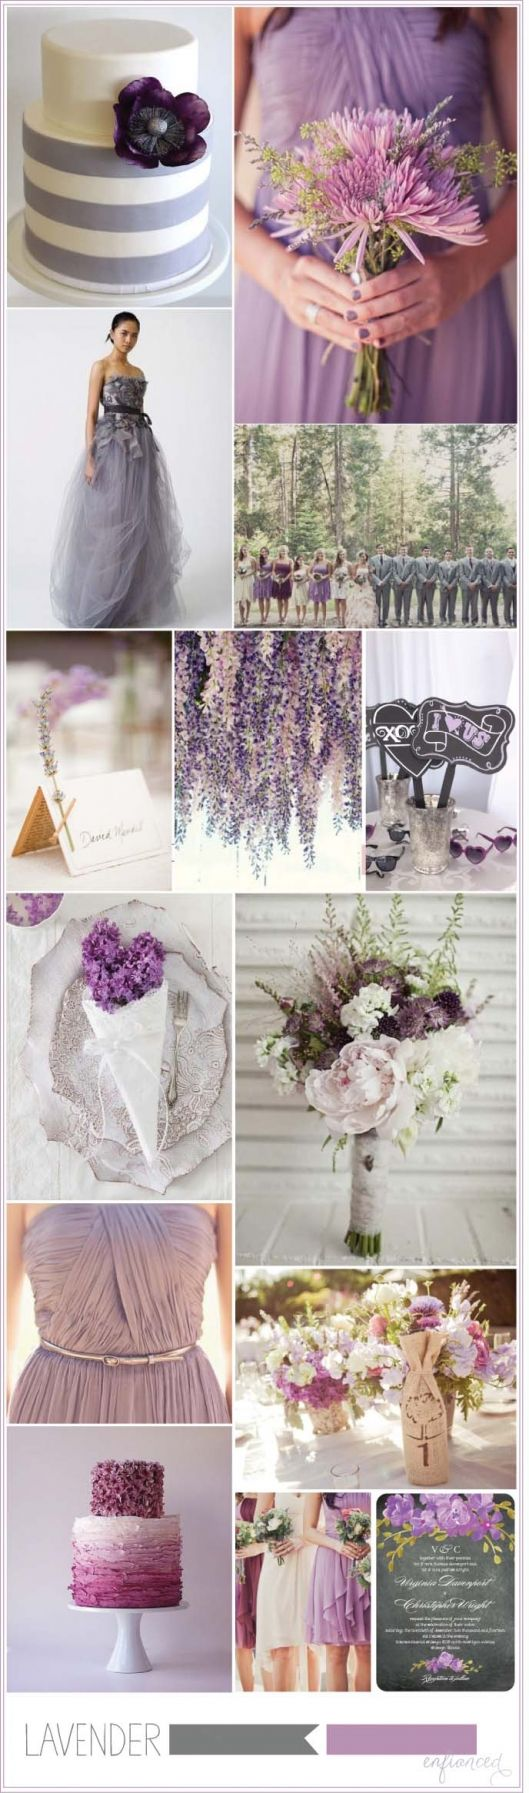 ♡ #Lavender #wedding ... For wedding ideas, plus how to organise an entire wedding, within any budget ... https://itunes.apple.com/us/app/the-gold-wedding-planner/id498112599?ls=1=8 ♥ THE GOLD WEDDING PLANNER iPhone App ♥  For more wedding inspiration http://pinterest.com/groomsandbrides/boards/ photo pinned with love & light, to help you plan your wedding easily ♡